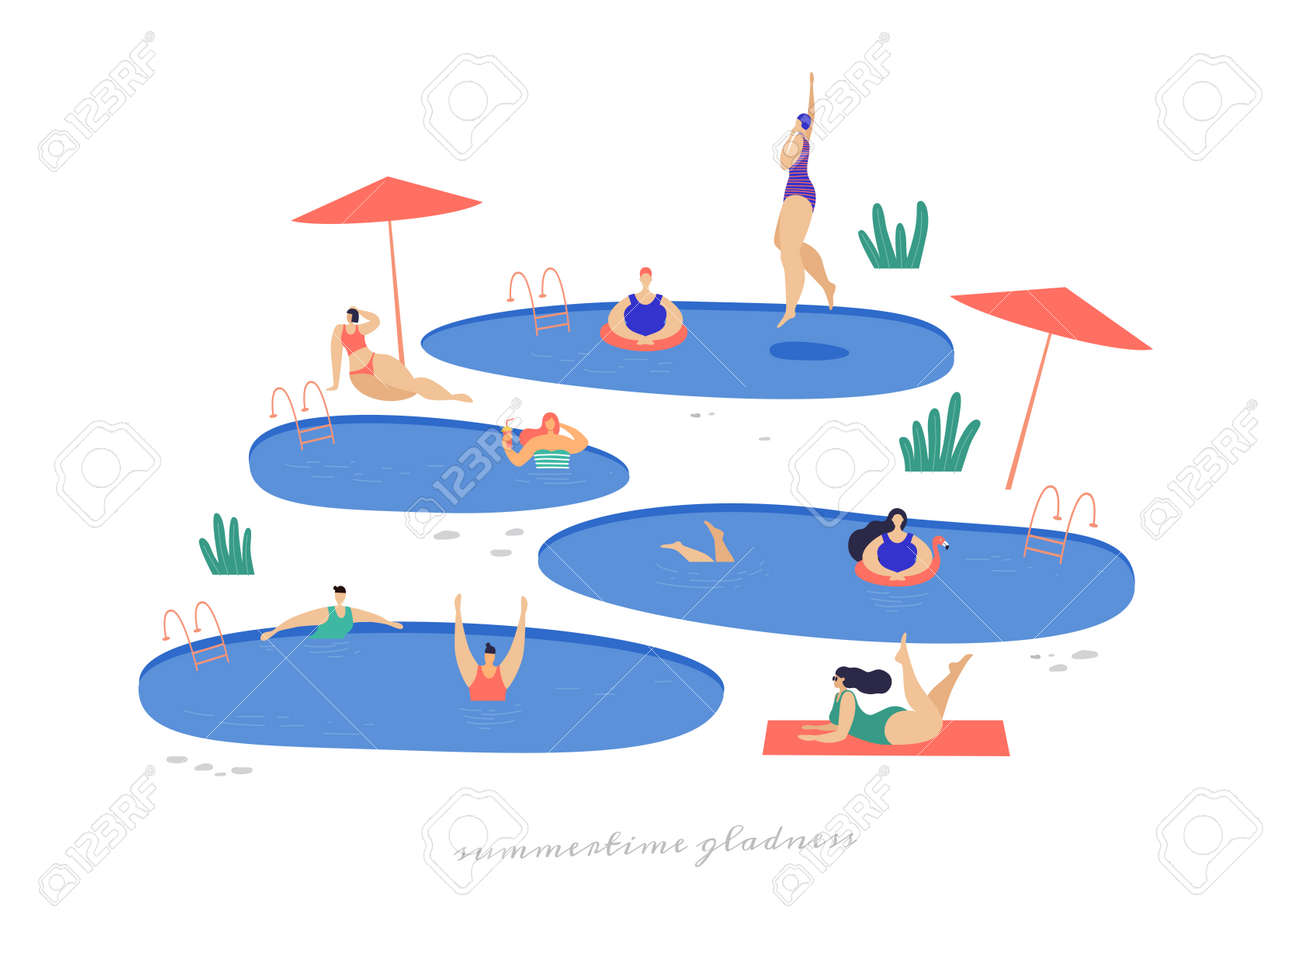 Cute girls by pool relax and spend their leisure time in fresh air. Young girls in bathing suits sunbathe and swim. Summer vacation on the beach. Illustration in trendy flat style. - 150823982